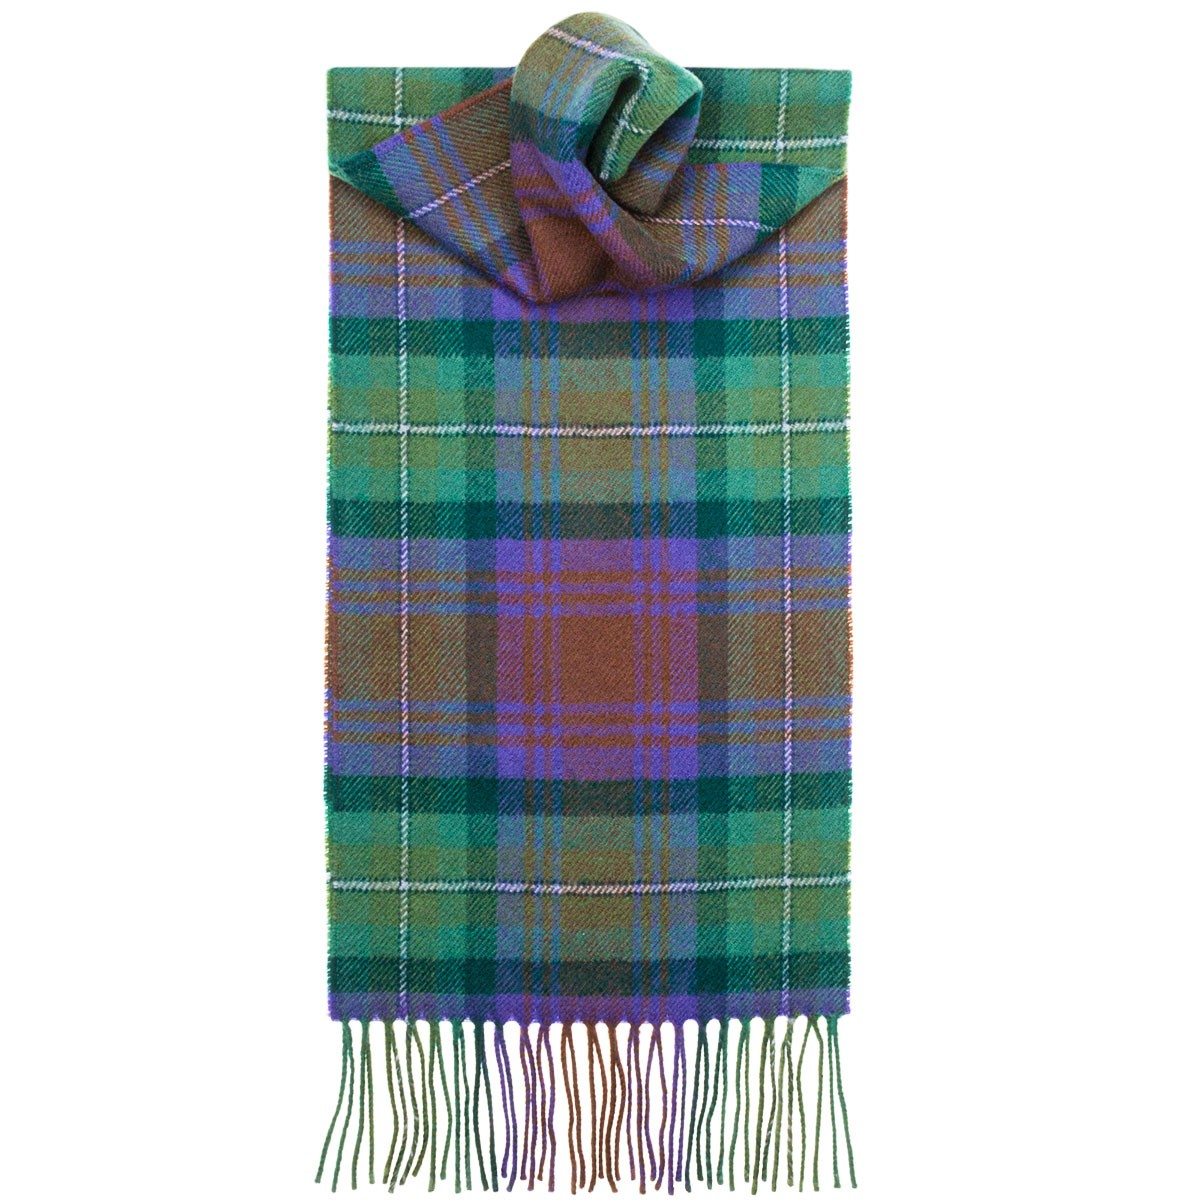 Waverly Mill, Lochcarron of Scotland The Borders and the Southwest, Plain & Tartan Scarves | Lambswool | Lochcarron of Scotland